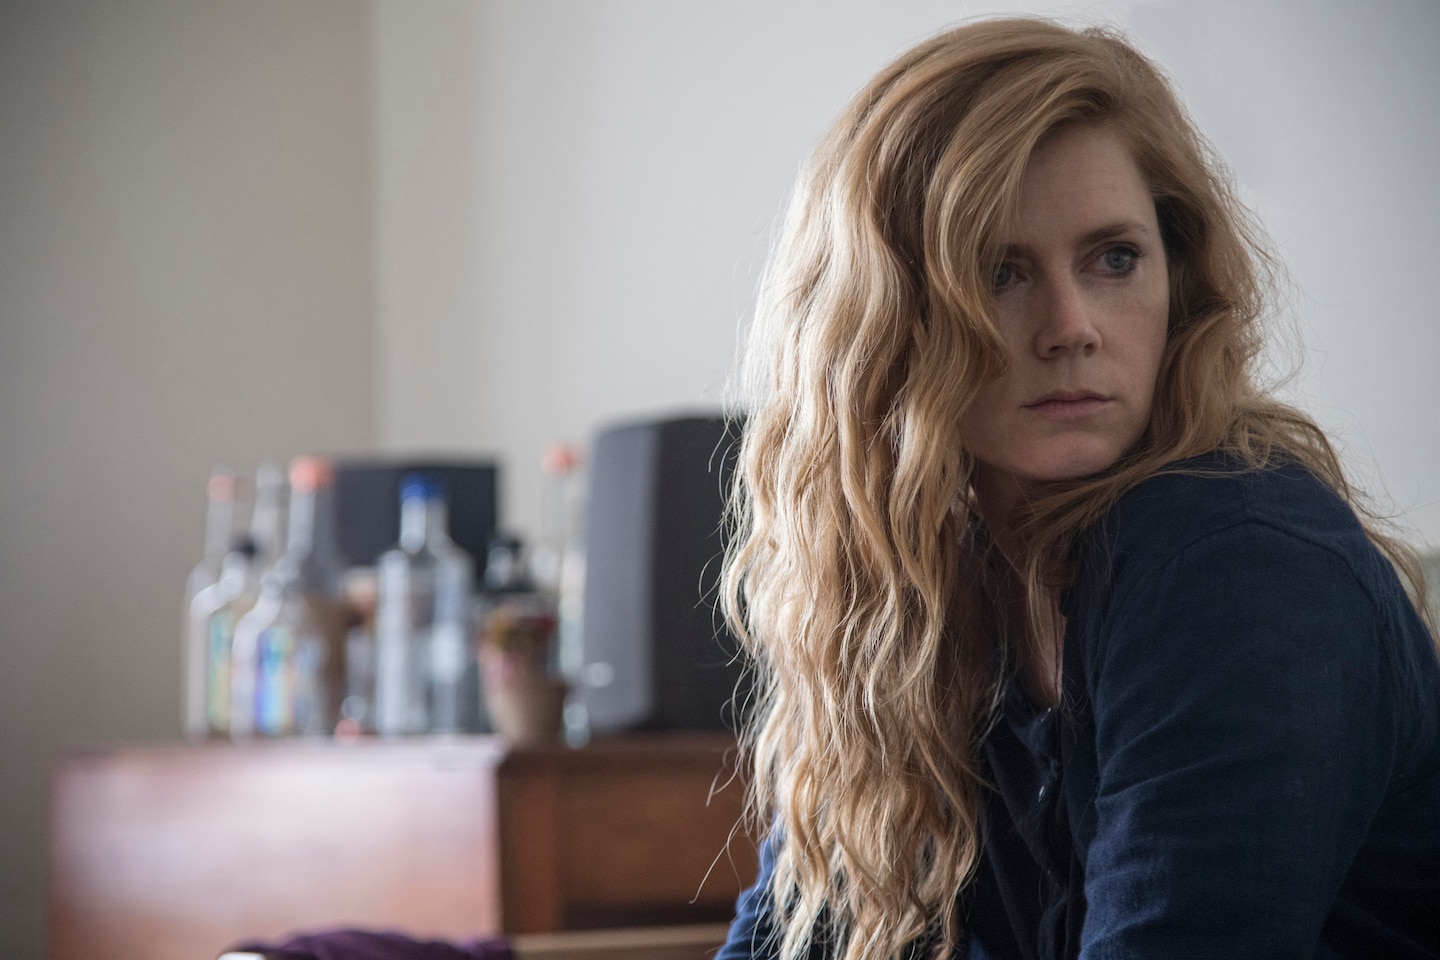 Golden Globes 2019: From Amy Adams to surprises and snubs, here are the 7 biggest takeaways from the nominations